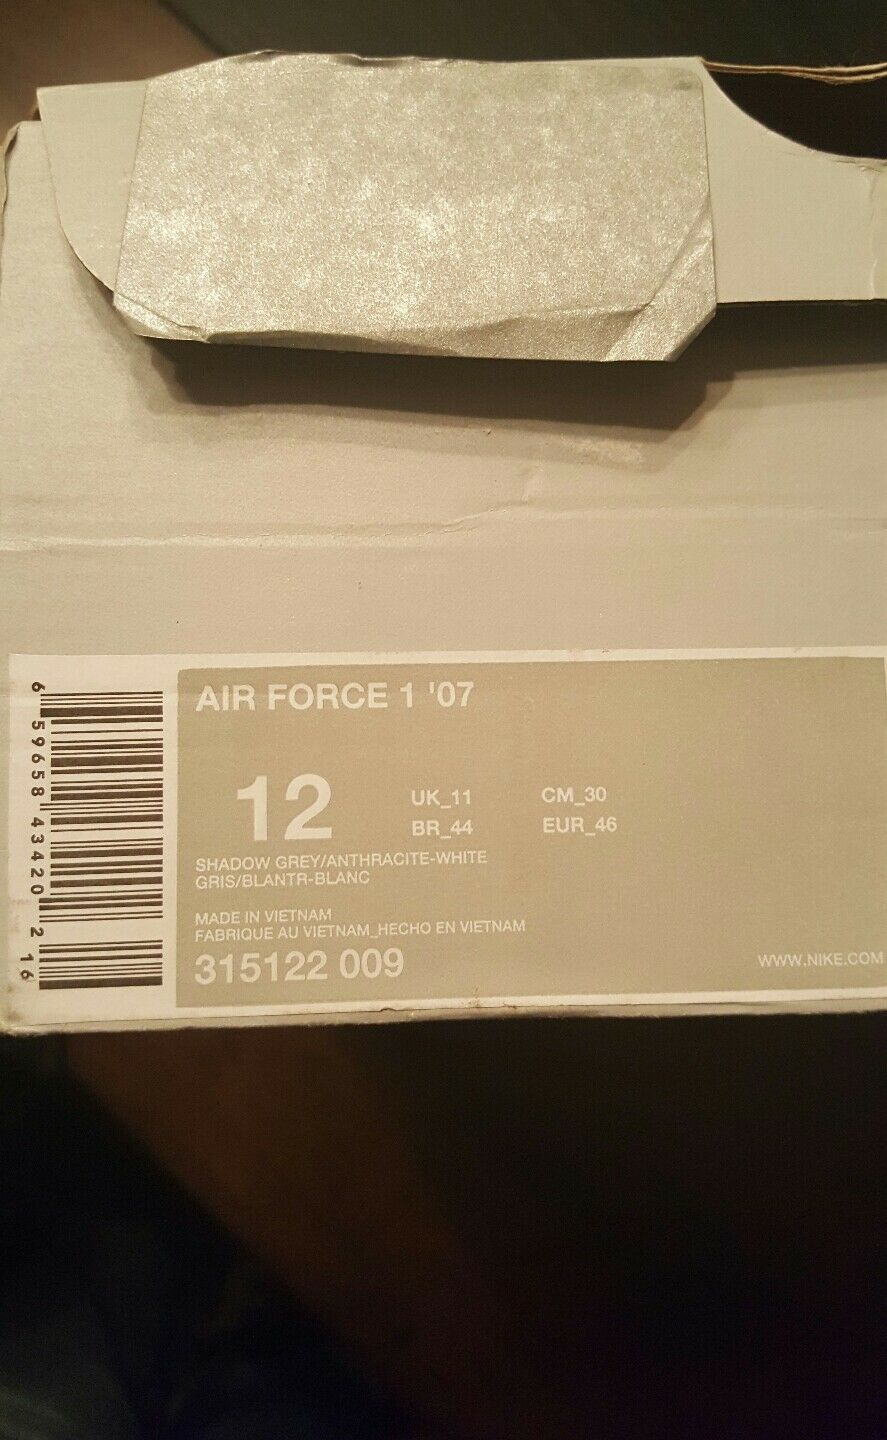 NIKE AIR FORCE ONE Supreme  '07 SZ 12 315122 009